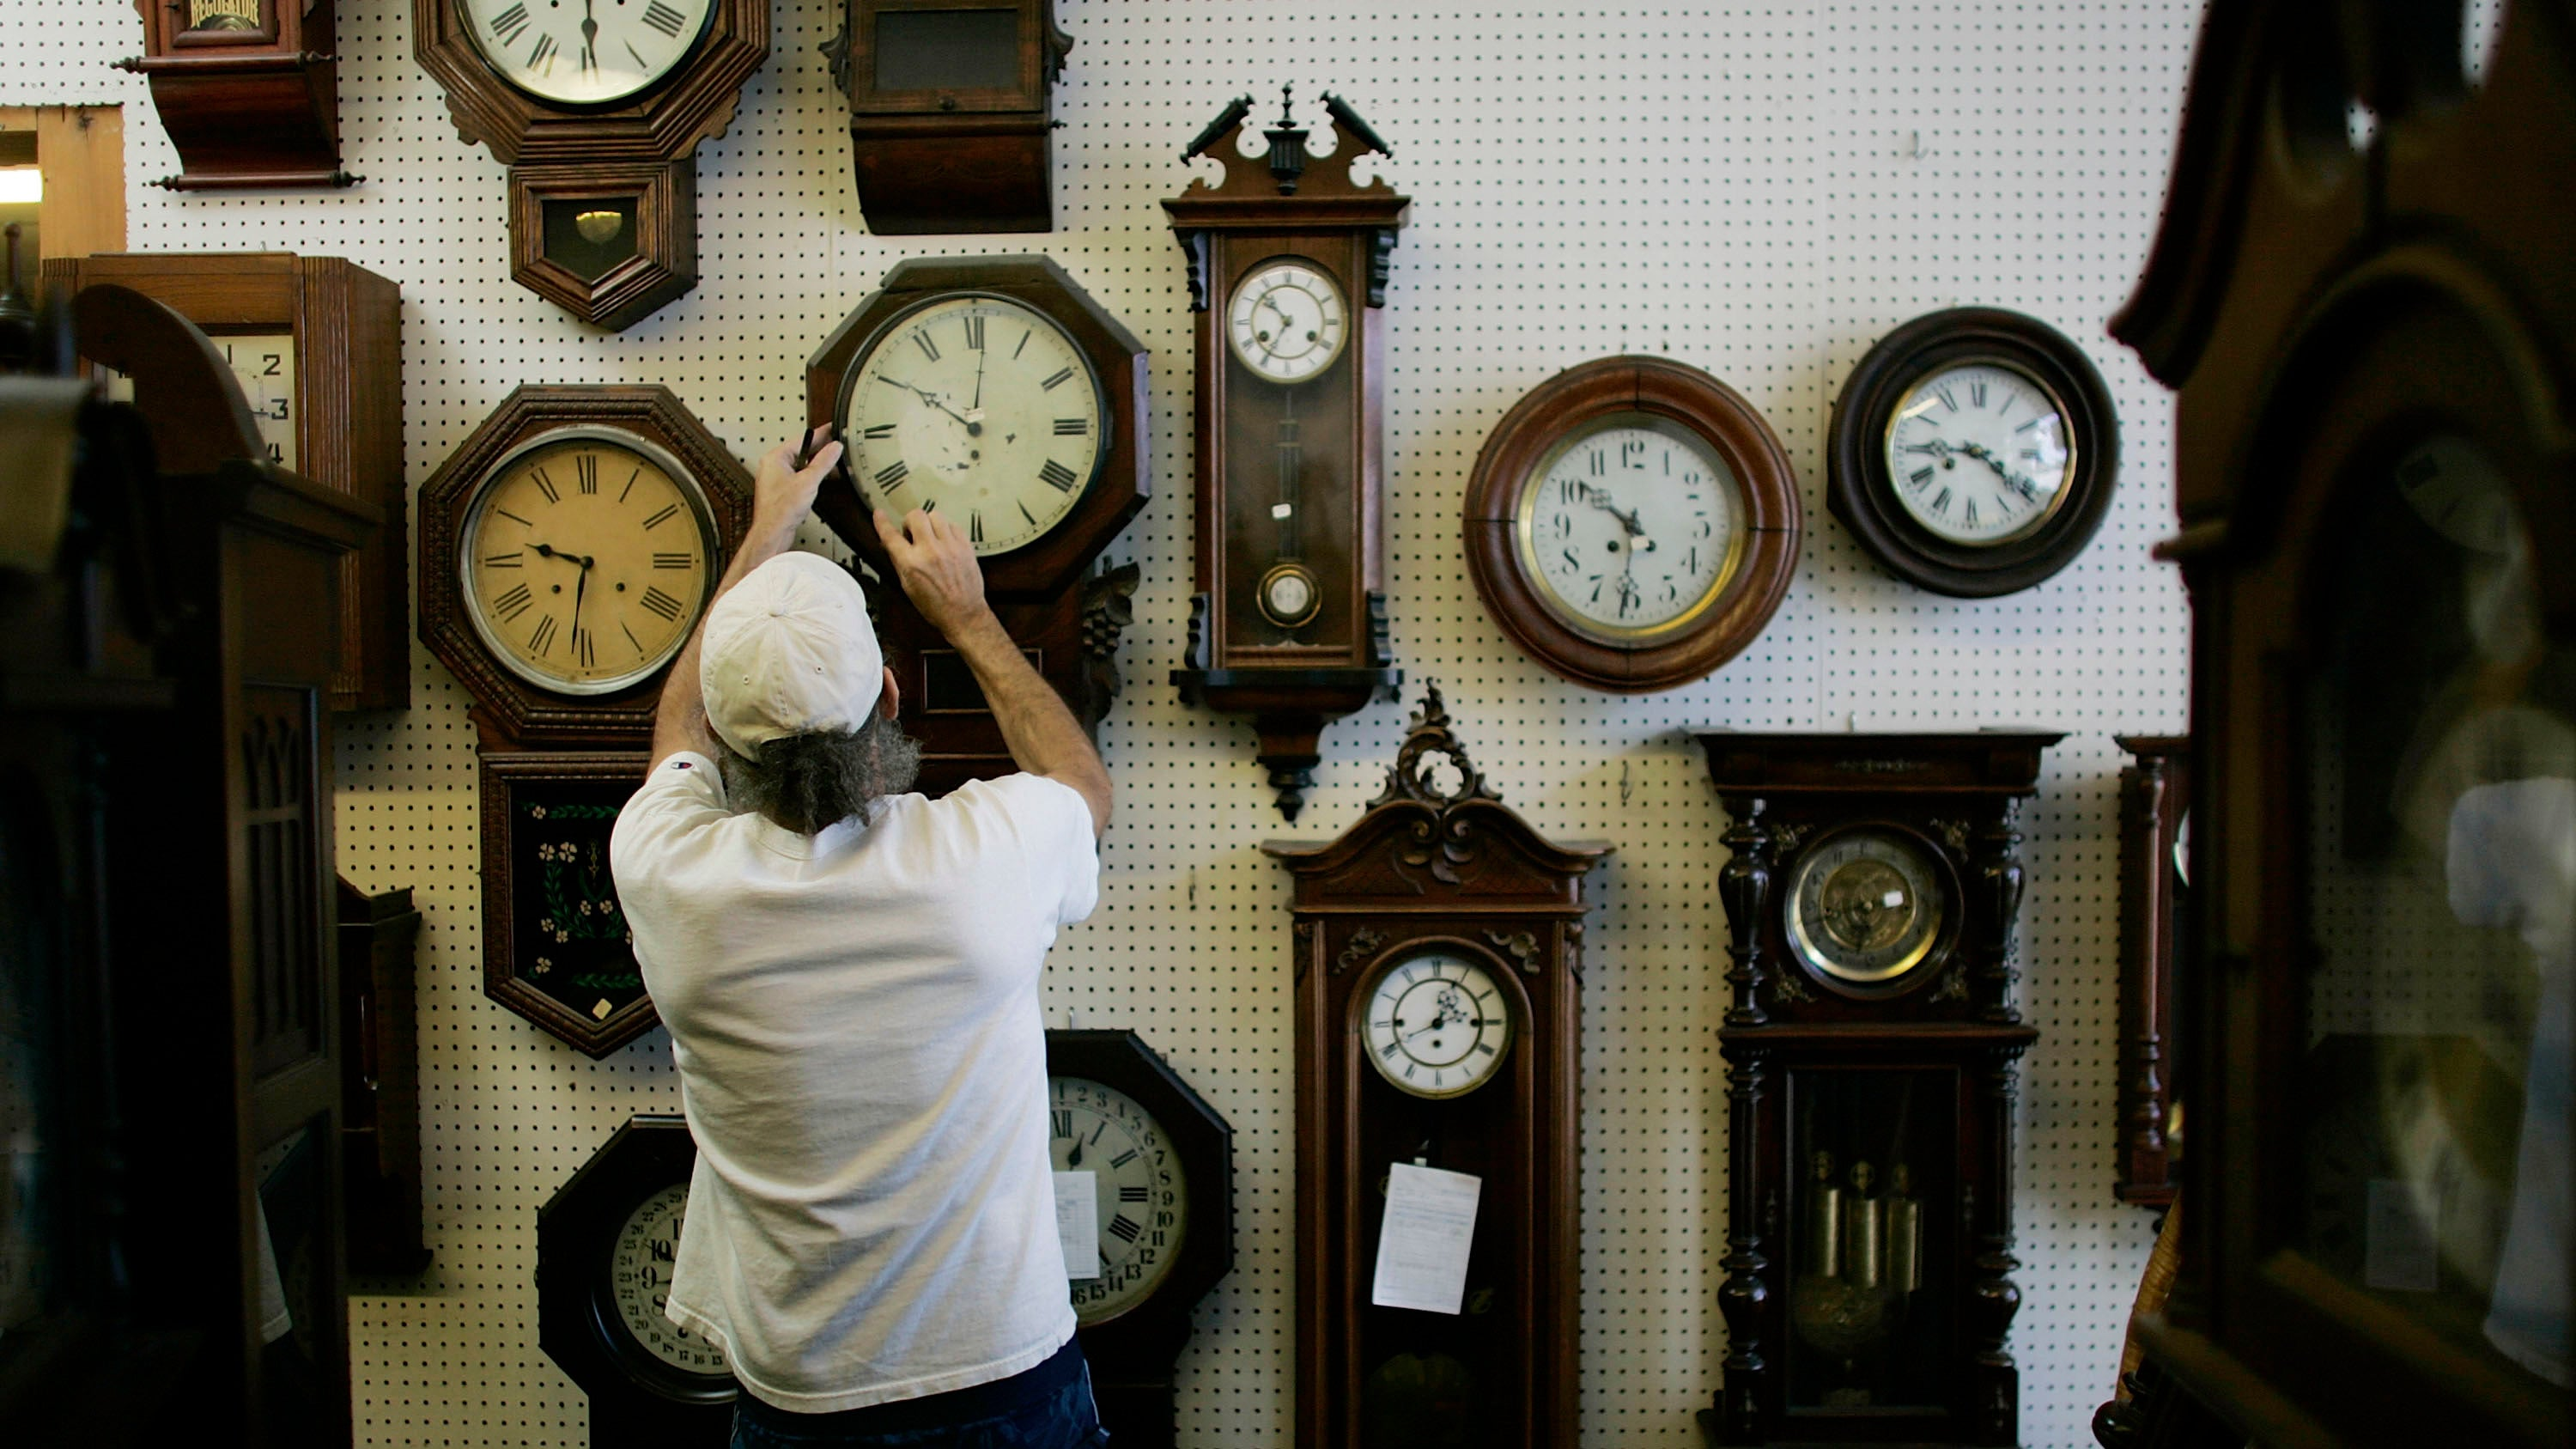 Citizens Of The EU Are Being Given The Chance To Vote Down Daylight Saving Time